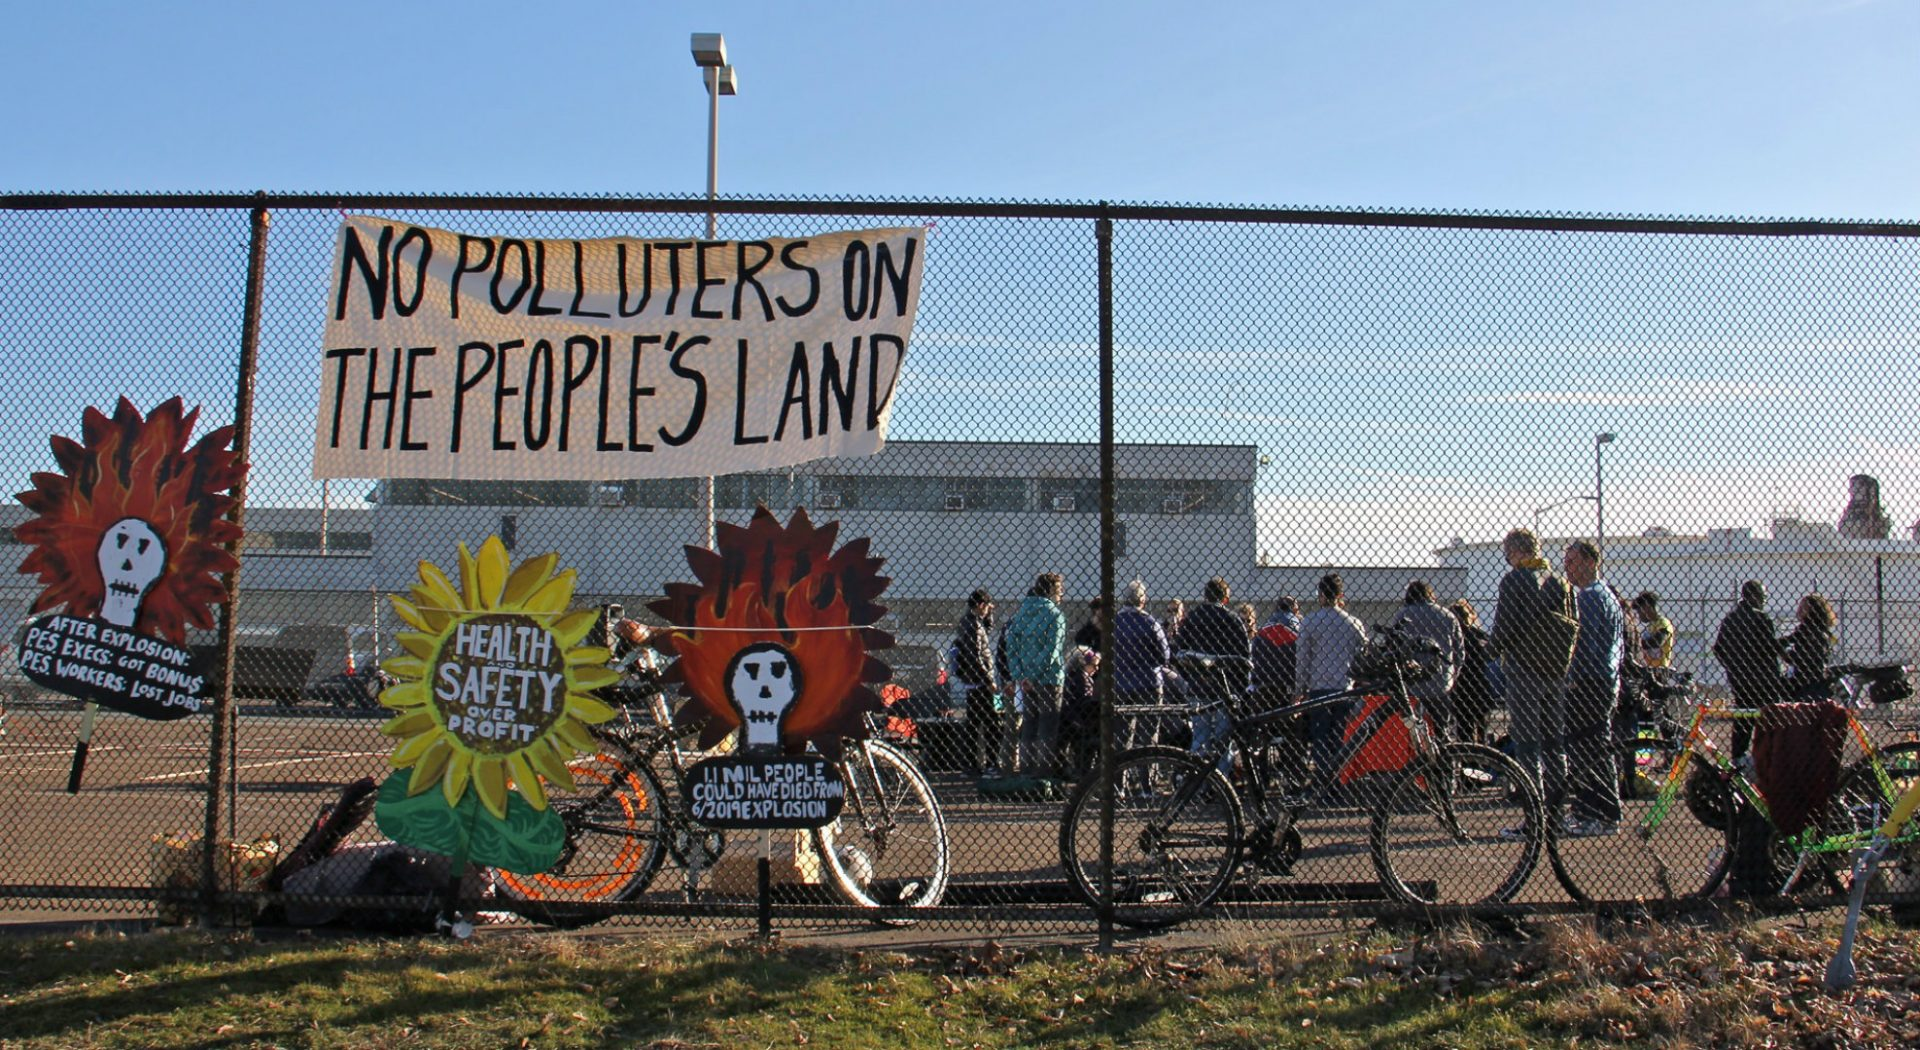 Protesters gather in a parking lot at the Philadelphia Energy Solutions refinery office on Passyunk Avenue in South Philadelphia. (Emma Lee/WHYY)